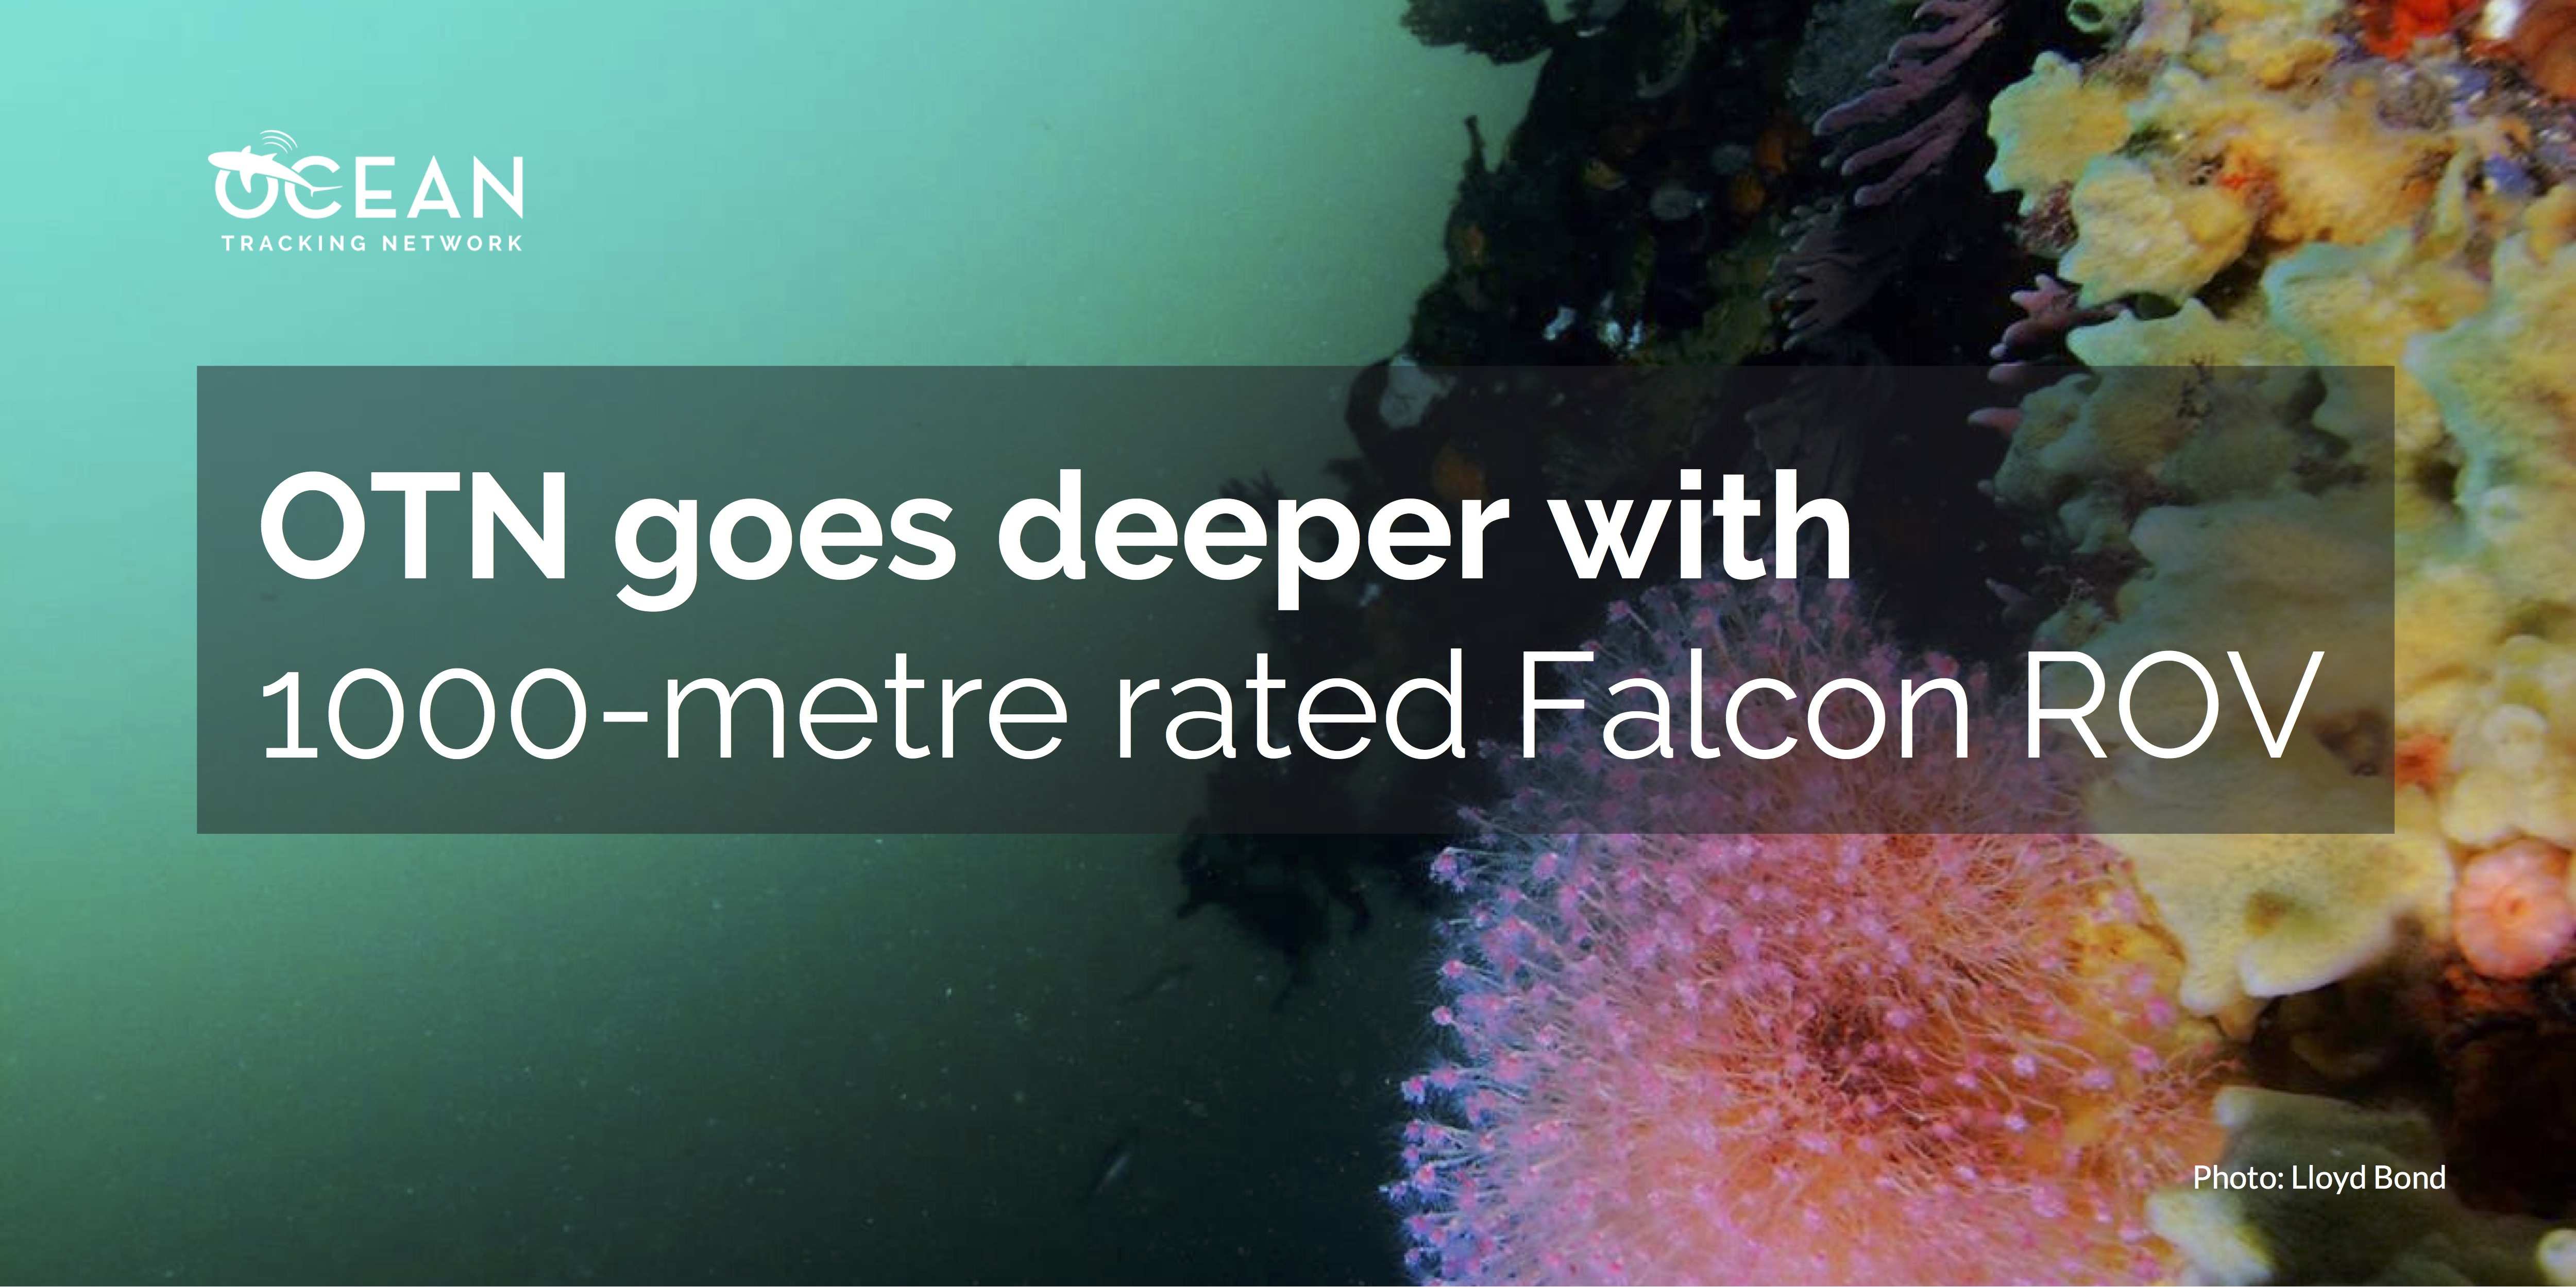 OTN goes deeper with 1000-metre rated Falcon ROV